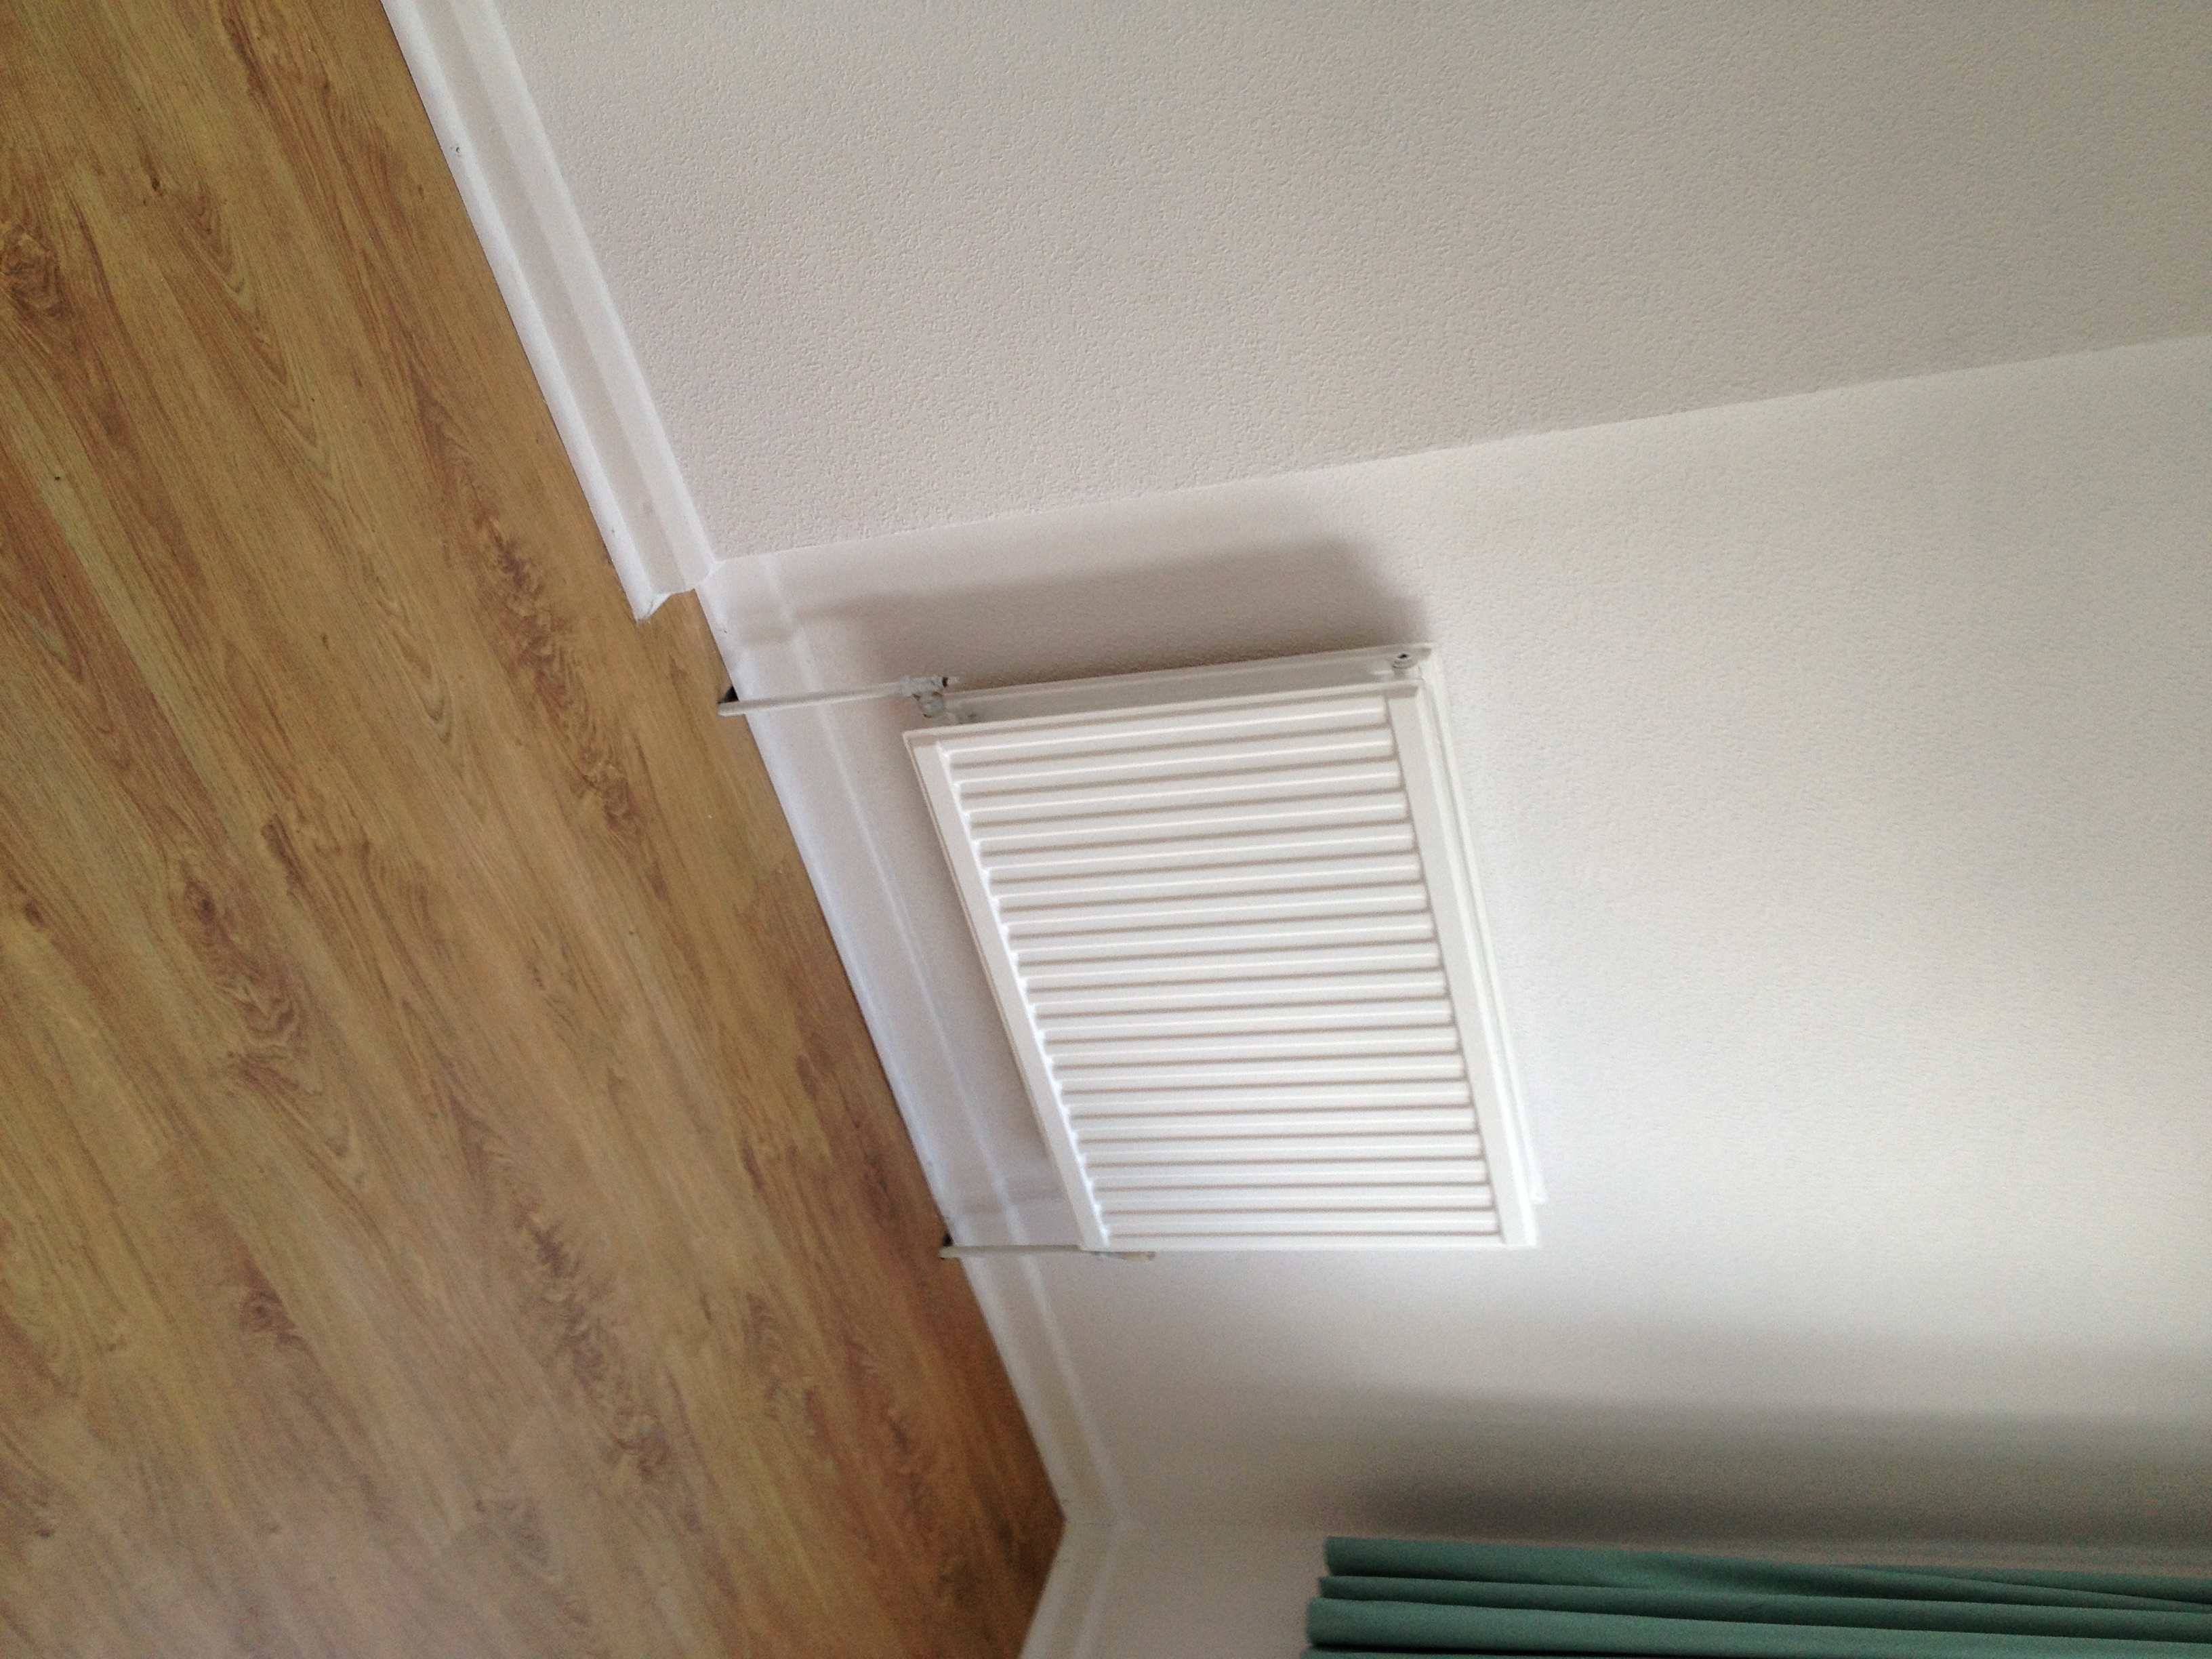 Spacious Double Room For Rent In Morden